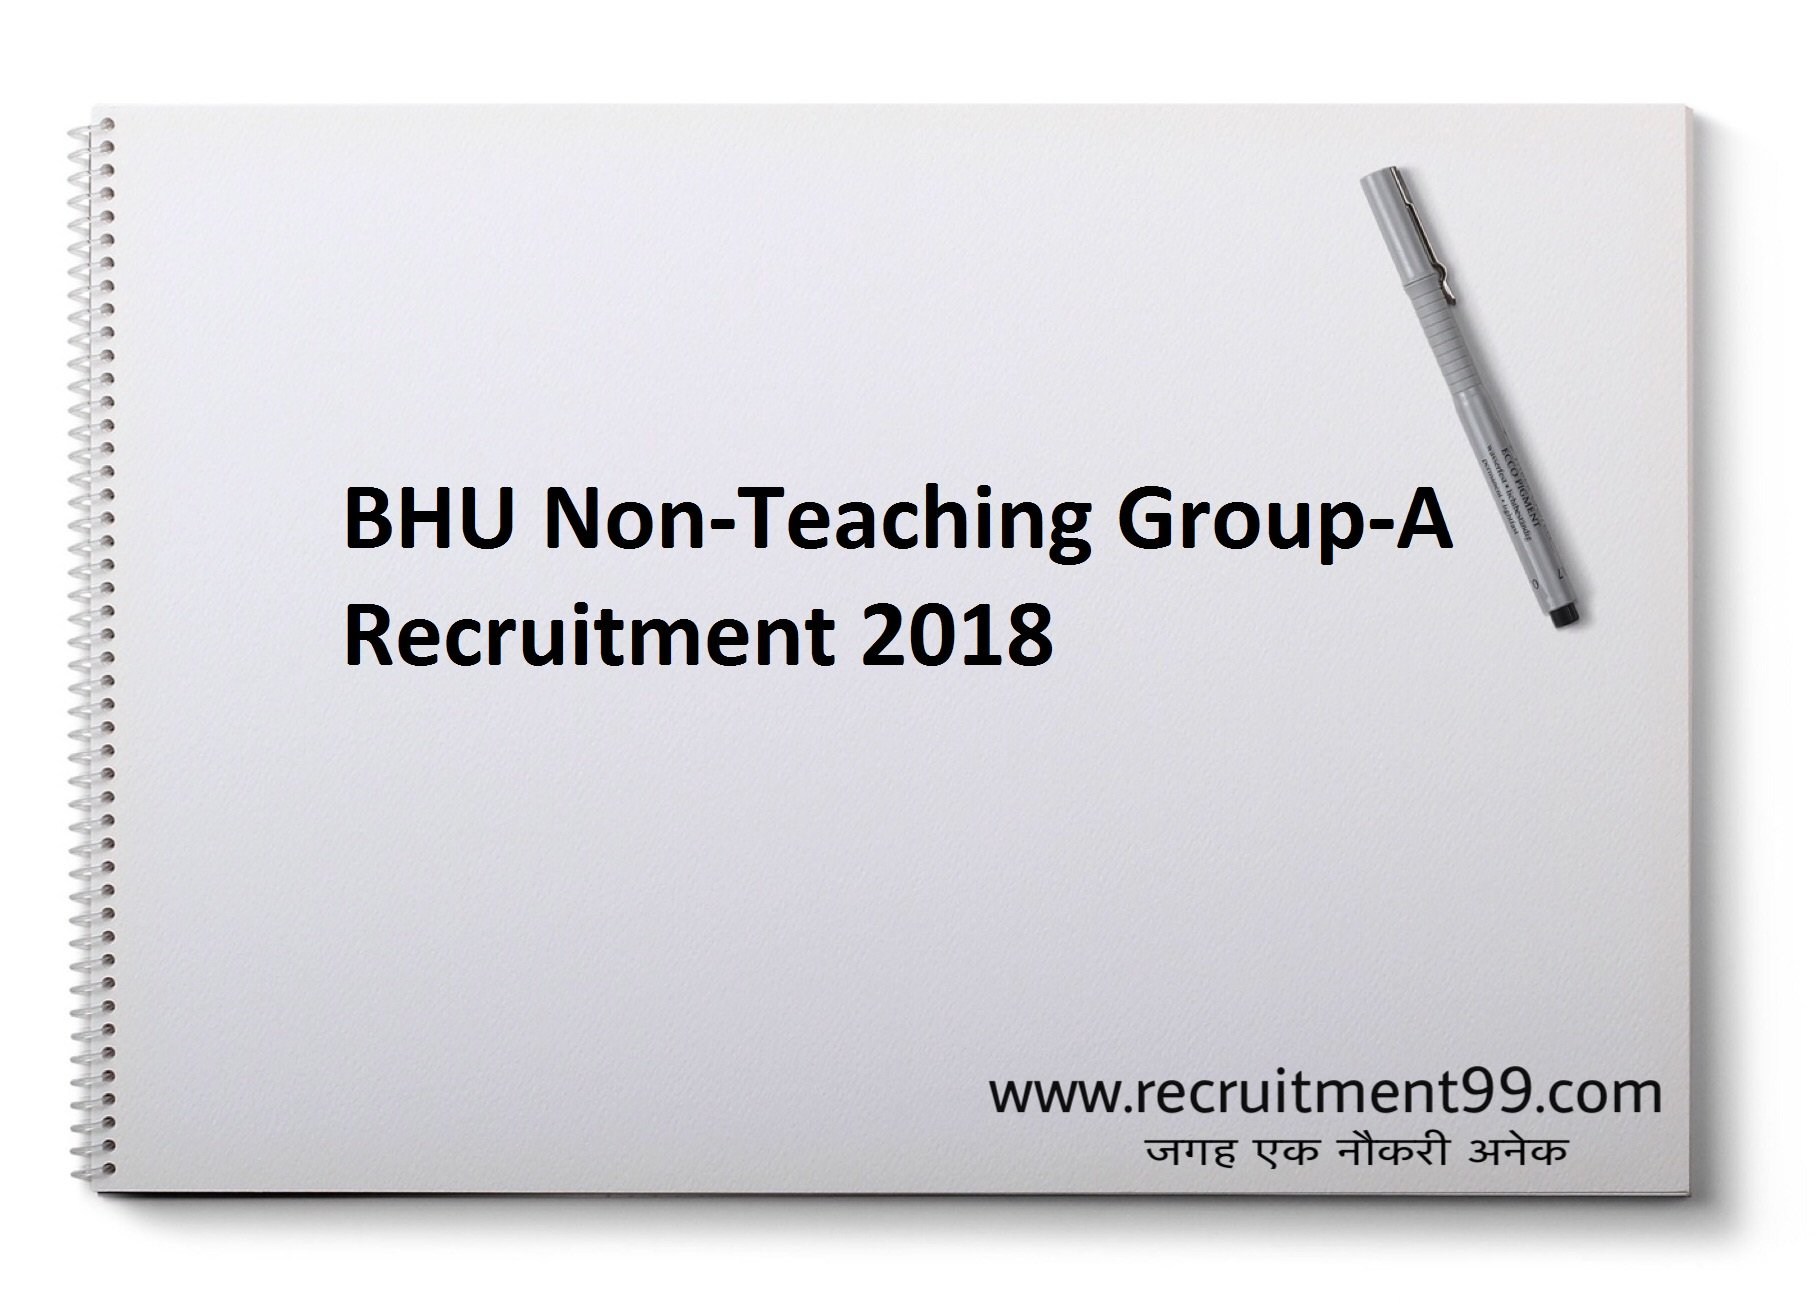 BHU Non-Teaching Group A Recruitment Admit Card Result 2018